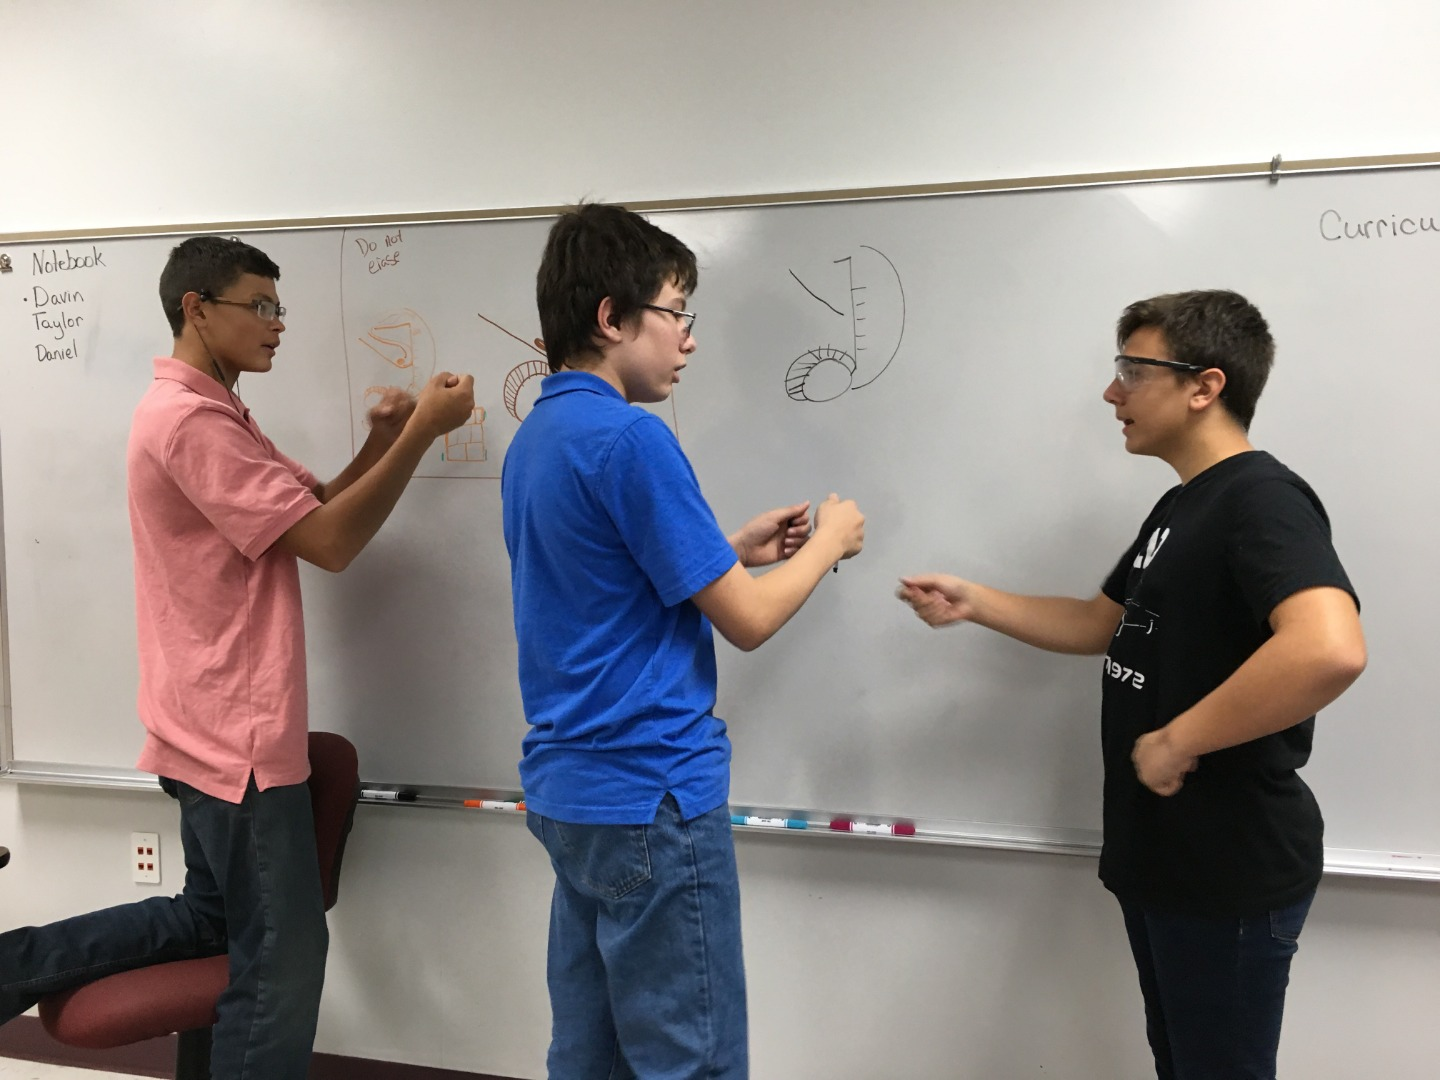 Taylor McLain, Davin Gould, and Daniel Thele plan their robot.